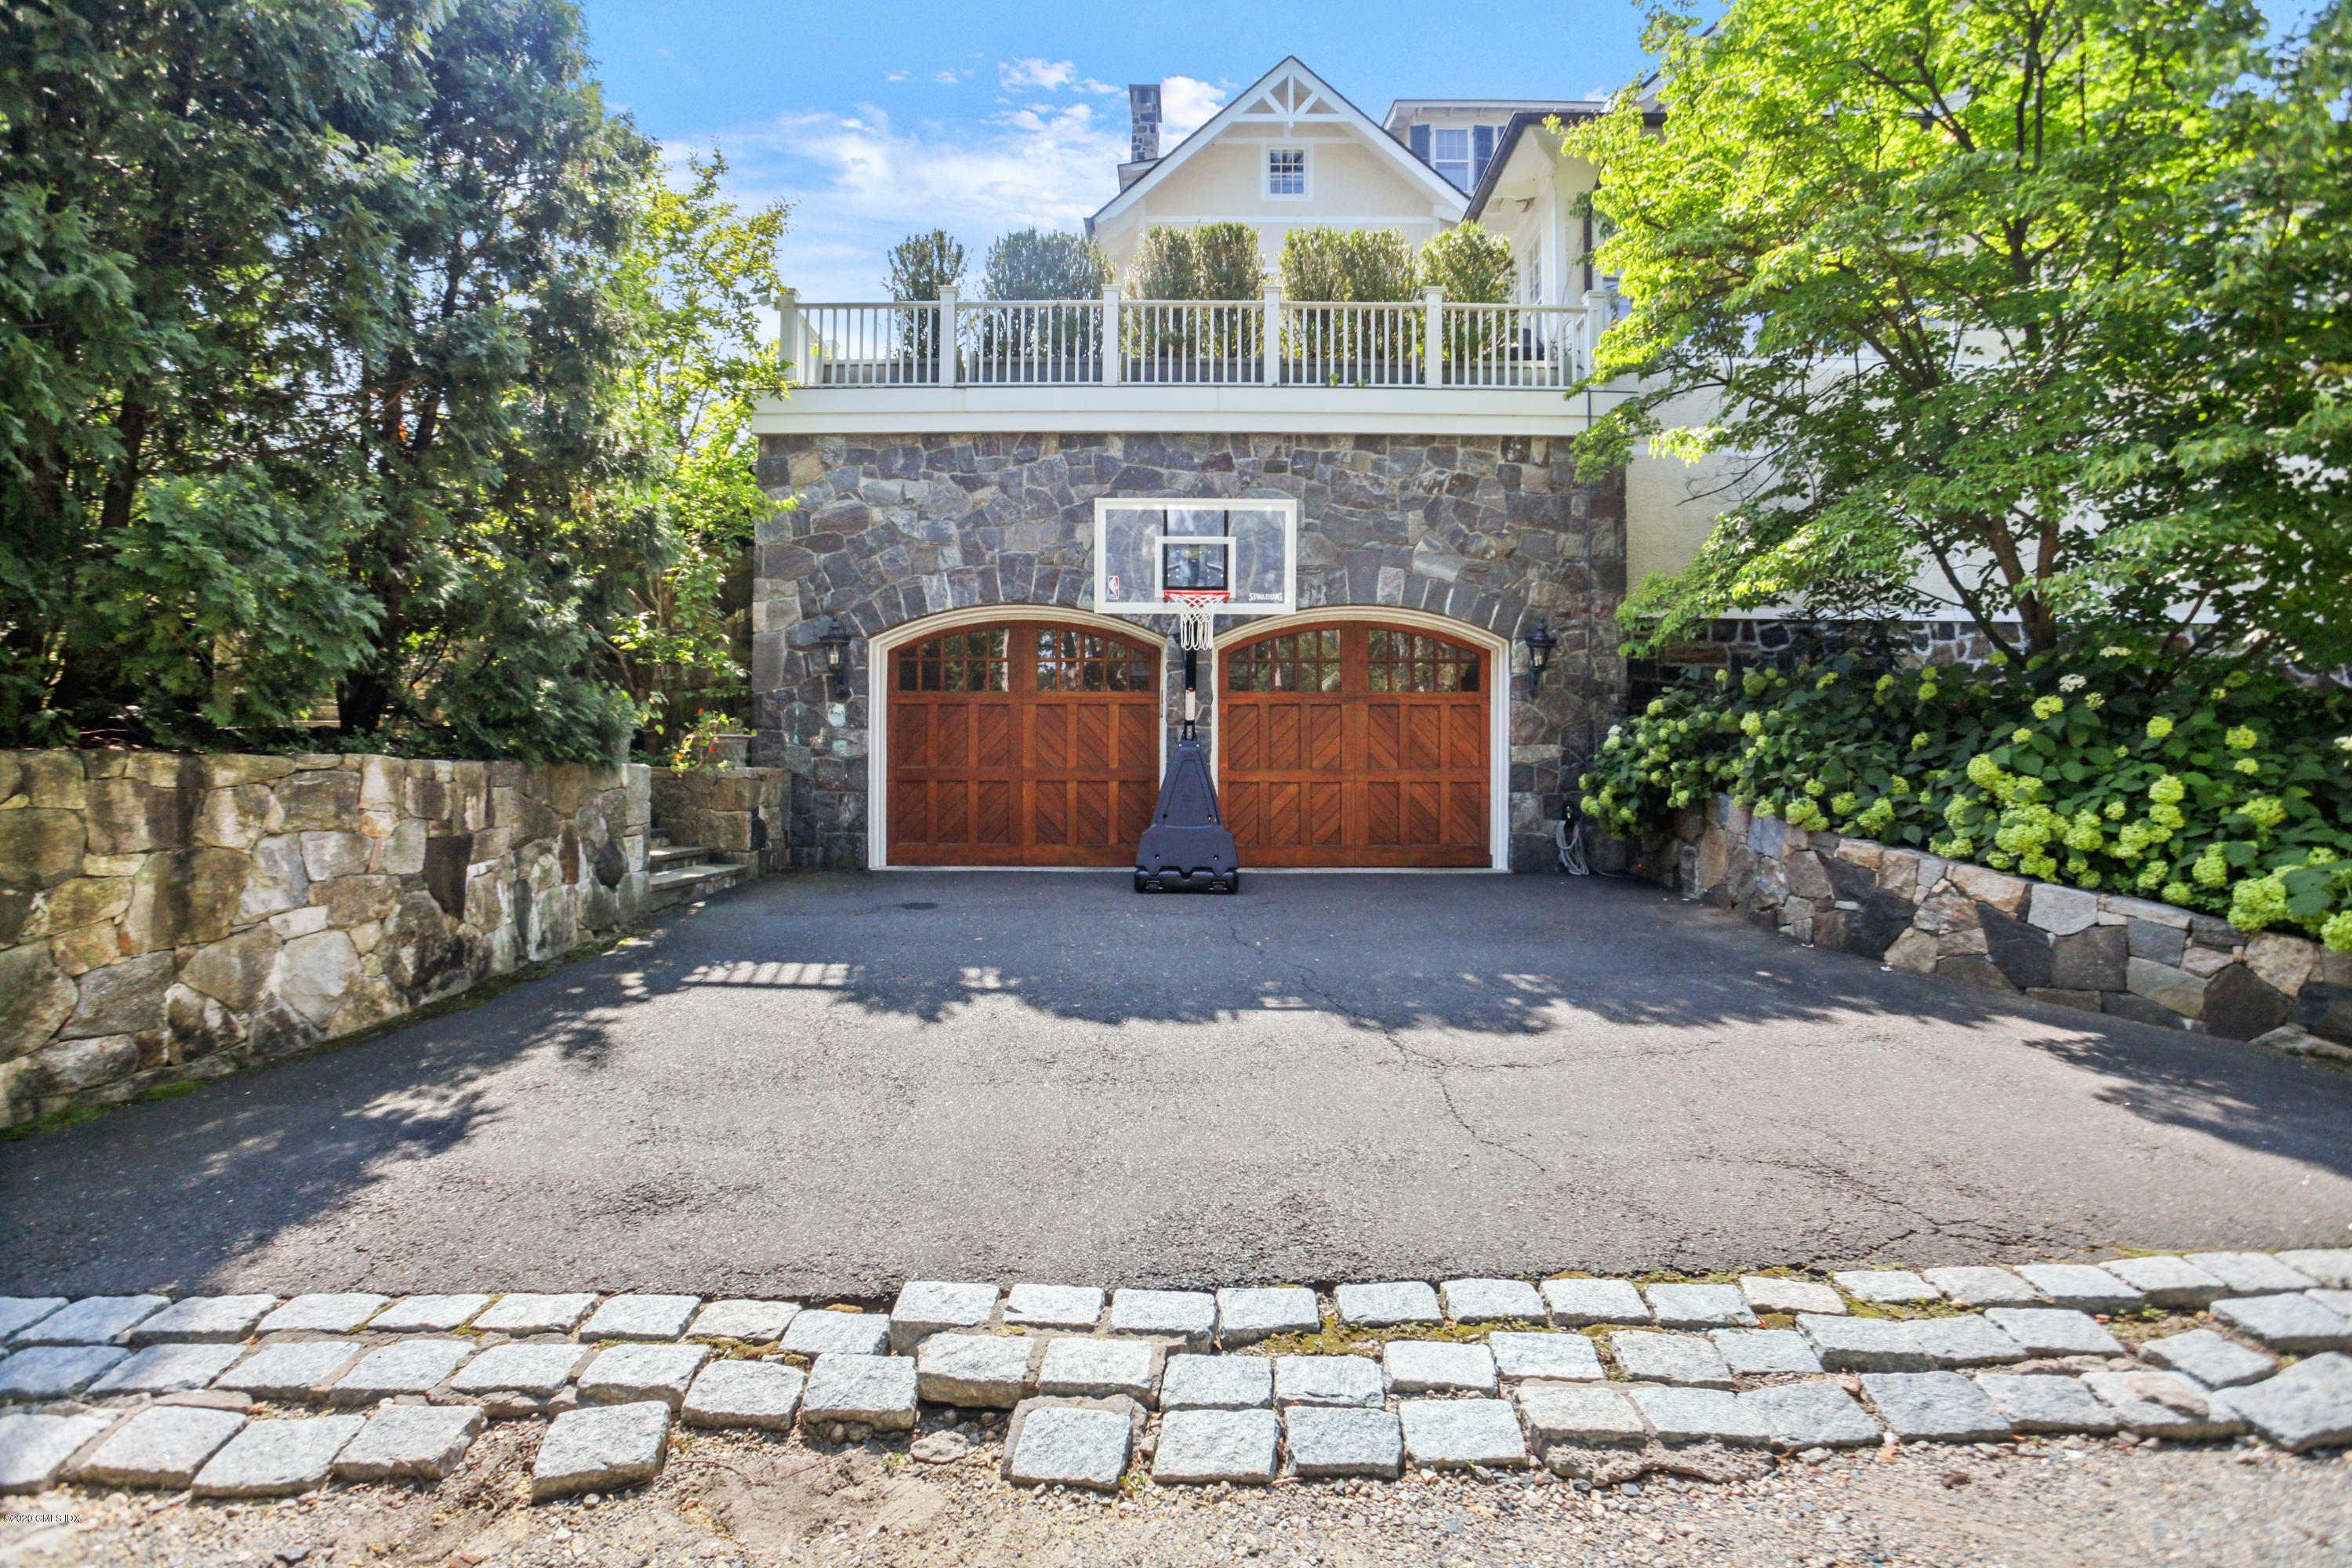 107 Patterson Avenue, Greenwich, Connecticut 06830, 6 Bedrooms Bedrooms, ,4 BathroomsBathrooms,Single family,For Rent,Patterson,110762